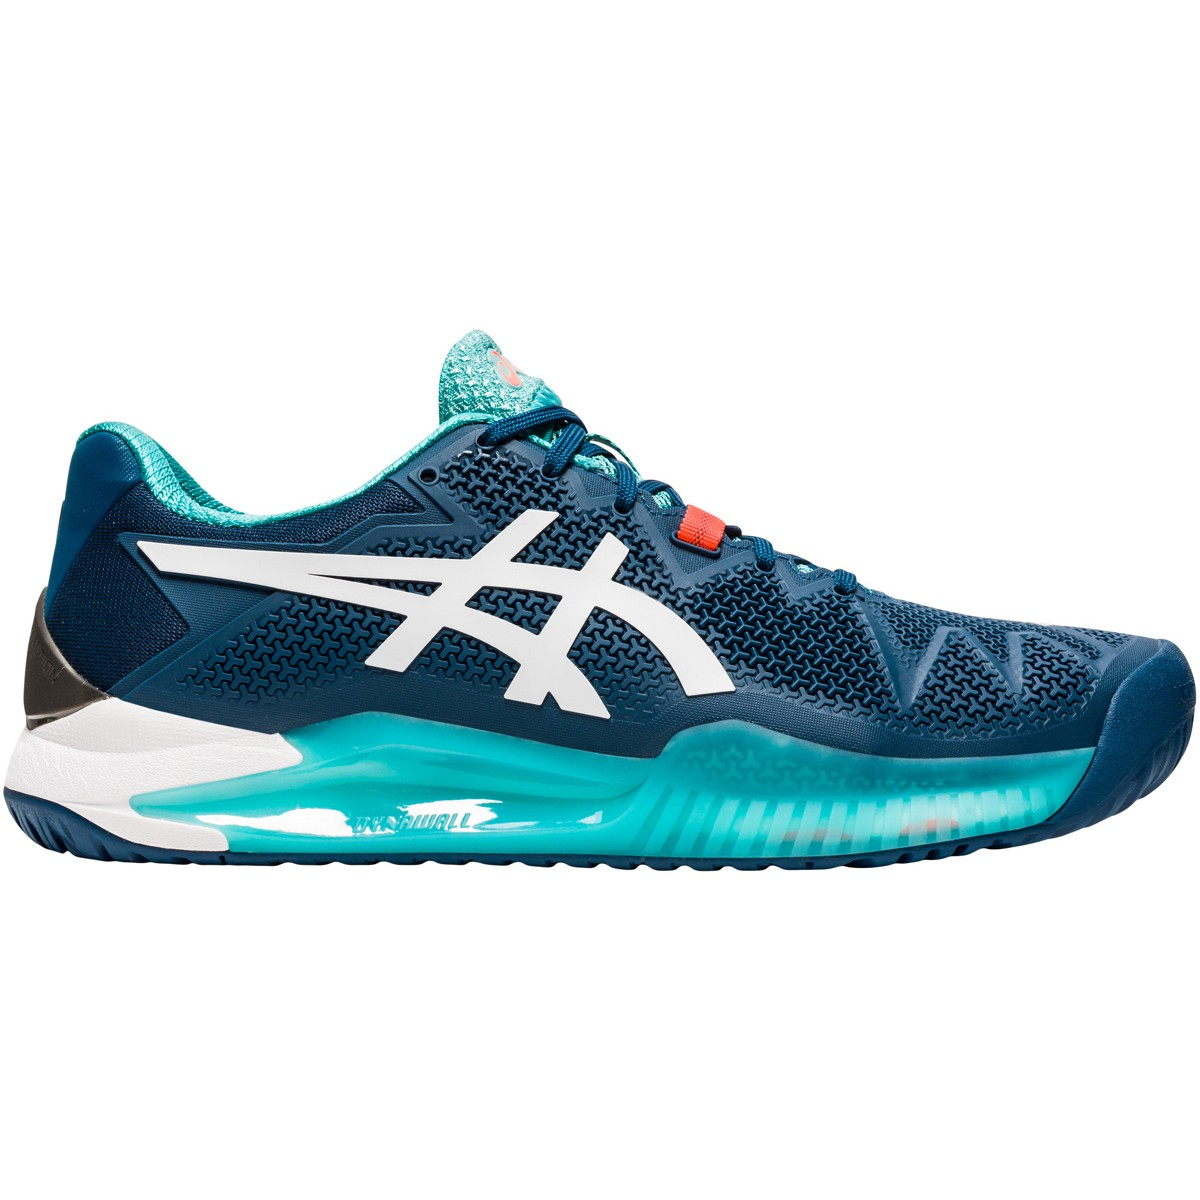 CHAUSSURES ASICS GEL RESOLUTION 8 TOUTES SURFACES - ASICS - Homme ...